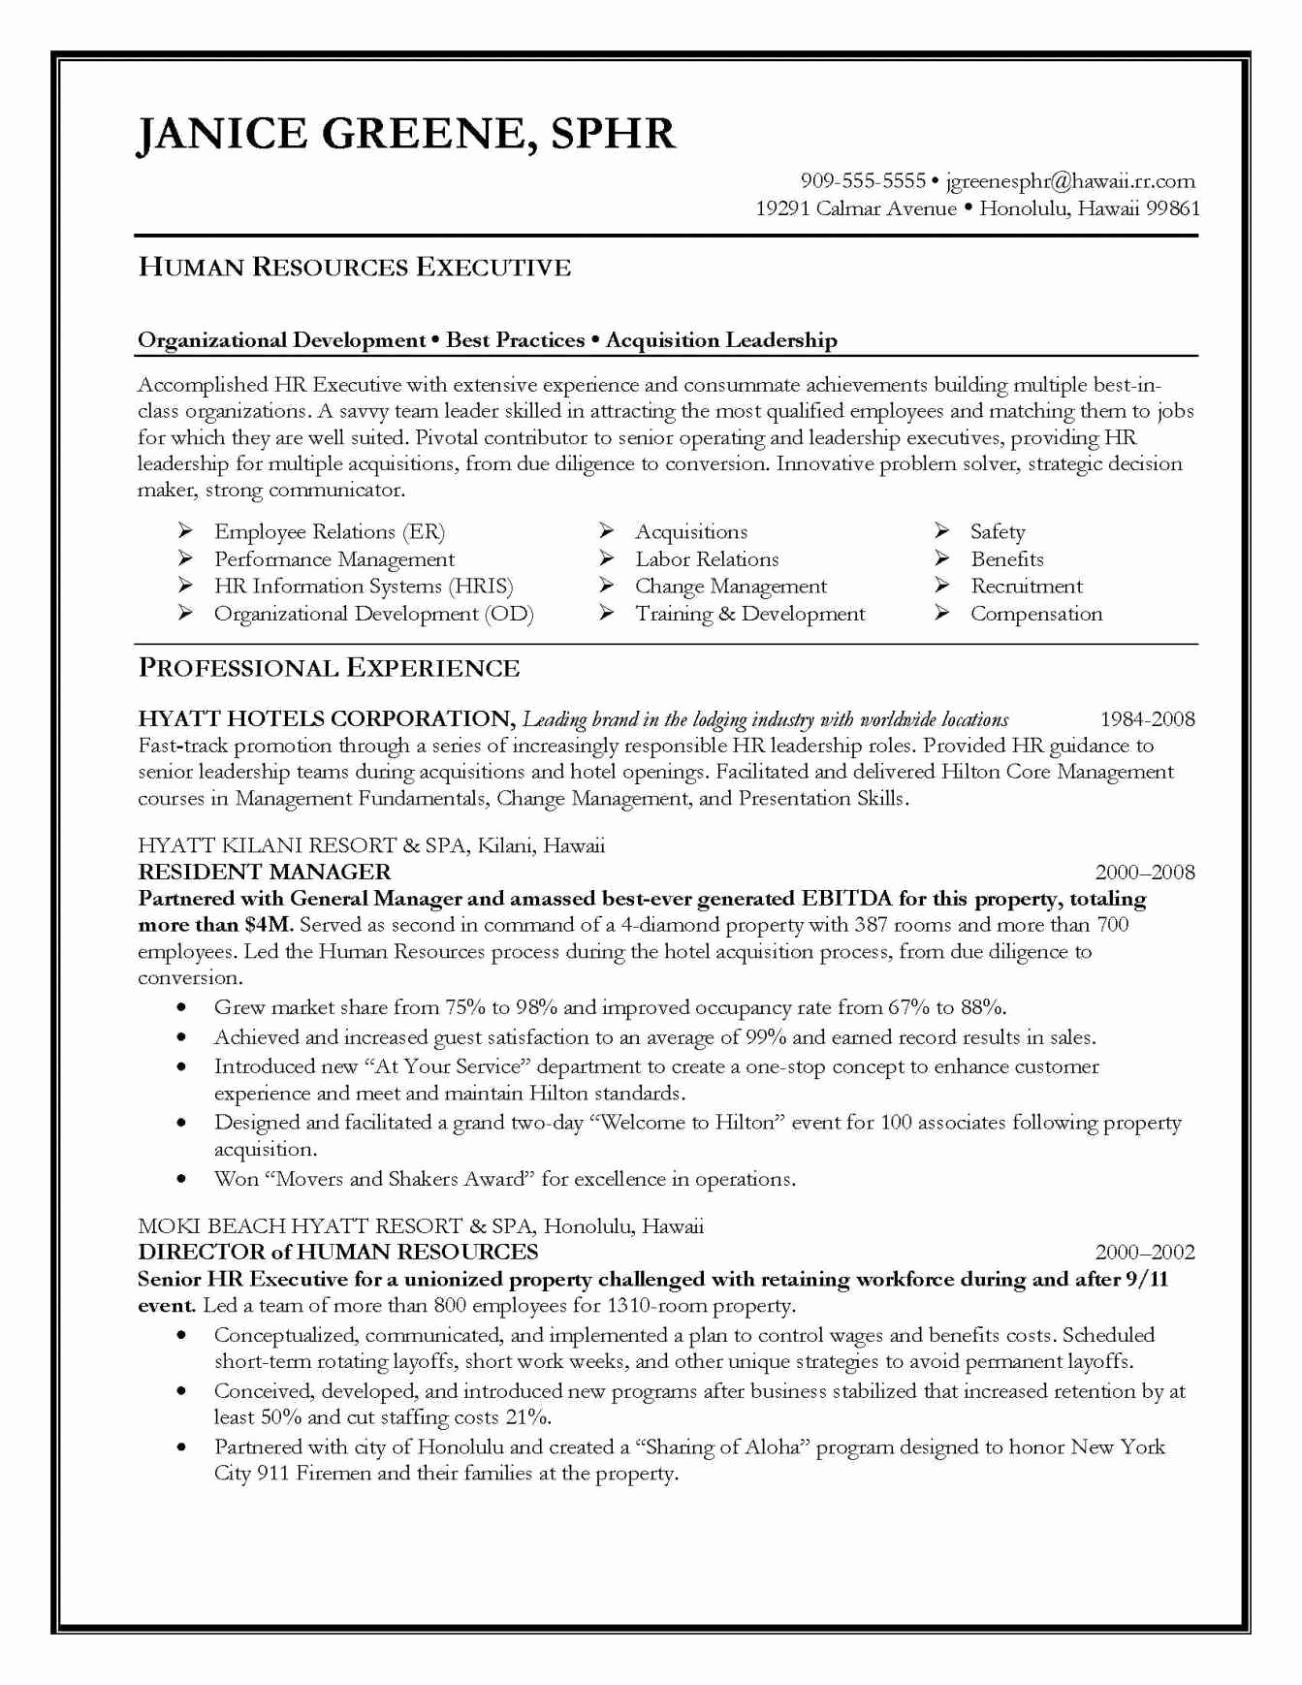 career change resume objective example-Career Change Resume Temp Fresh Career Change Resume Sample Awesome Resume Objective Statement Entry 14-i